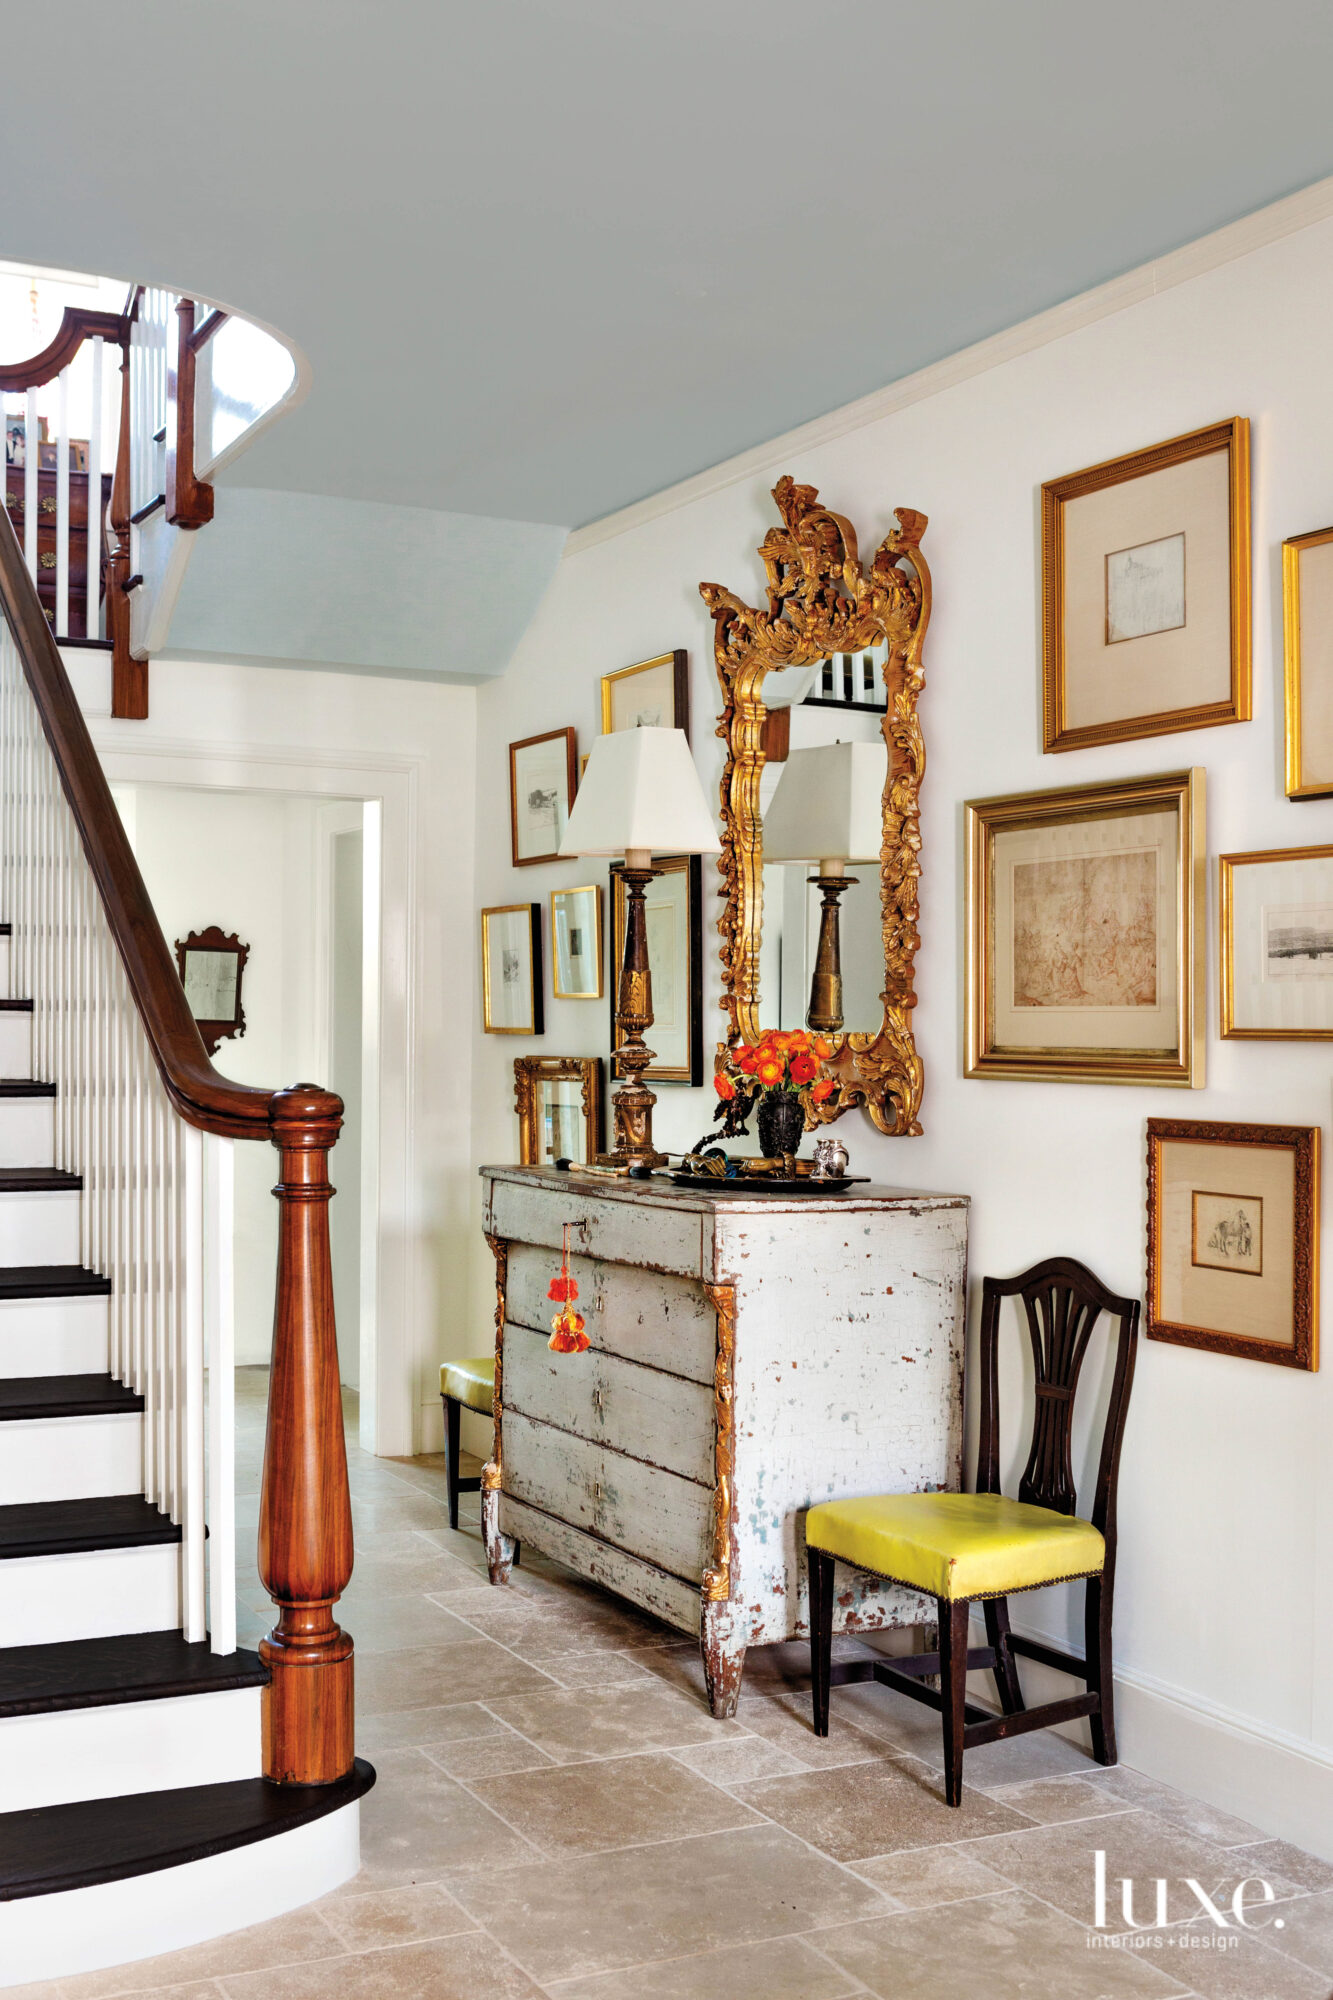 Hallway with stairwell, chest and framed pictures on the wall